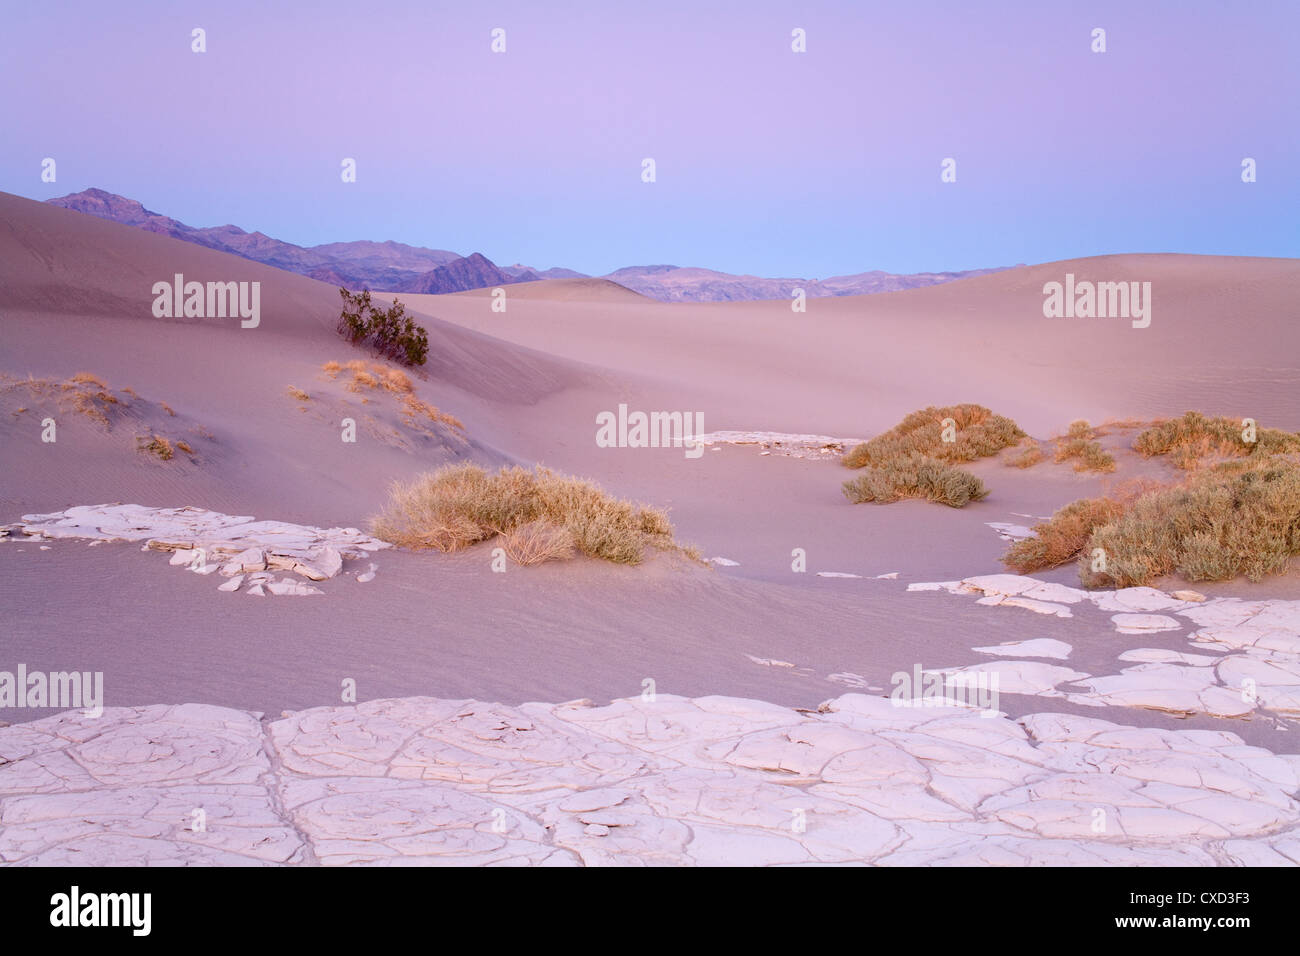 Dried mud in the Mesquite Flat Sand Dunes, Death Valley National Park, California, United States of America, North - Stock Image